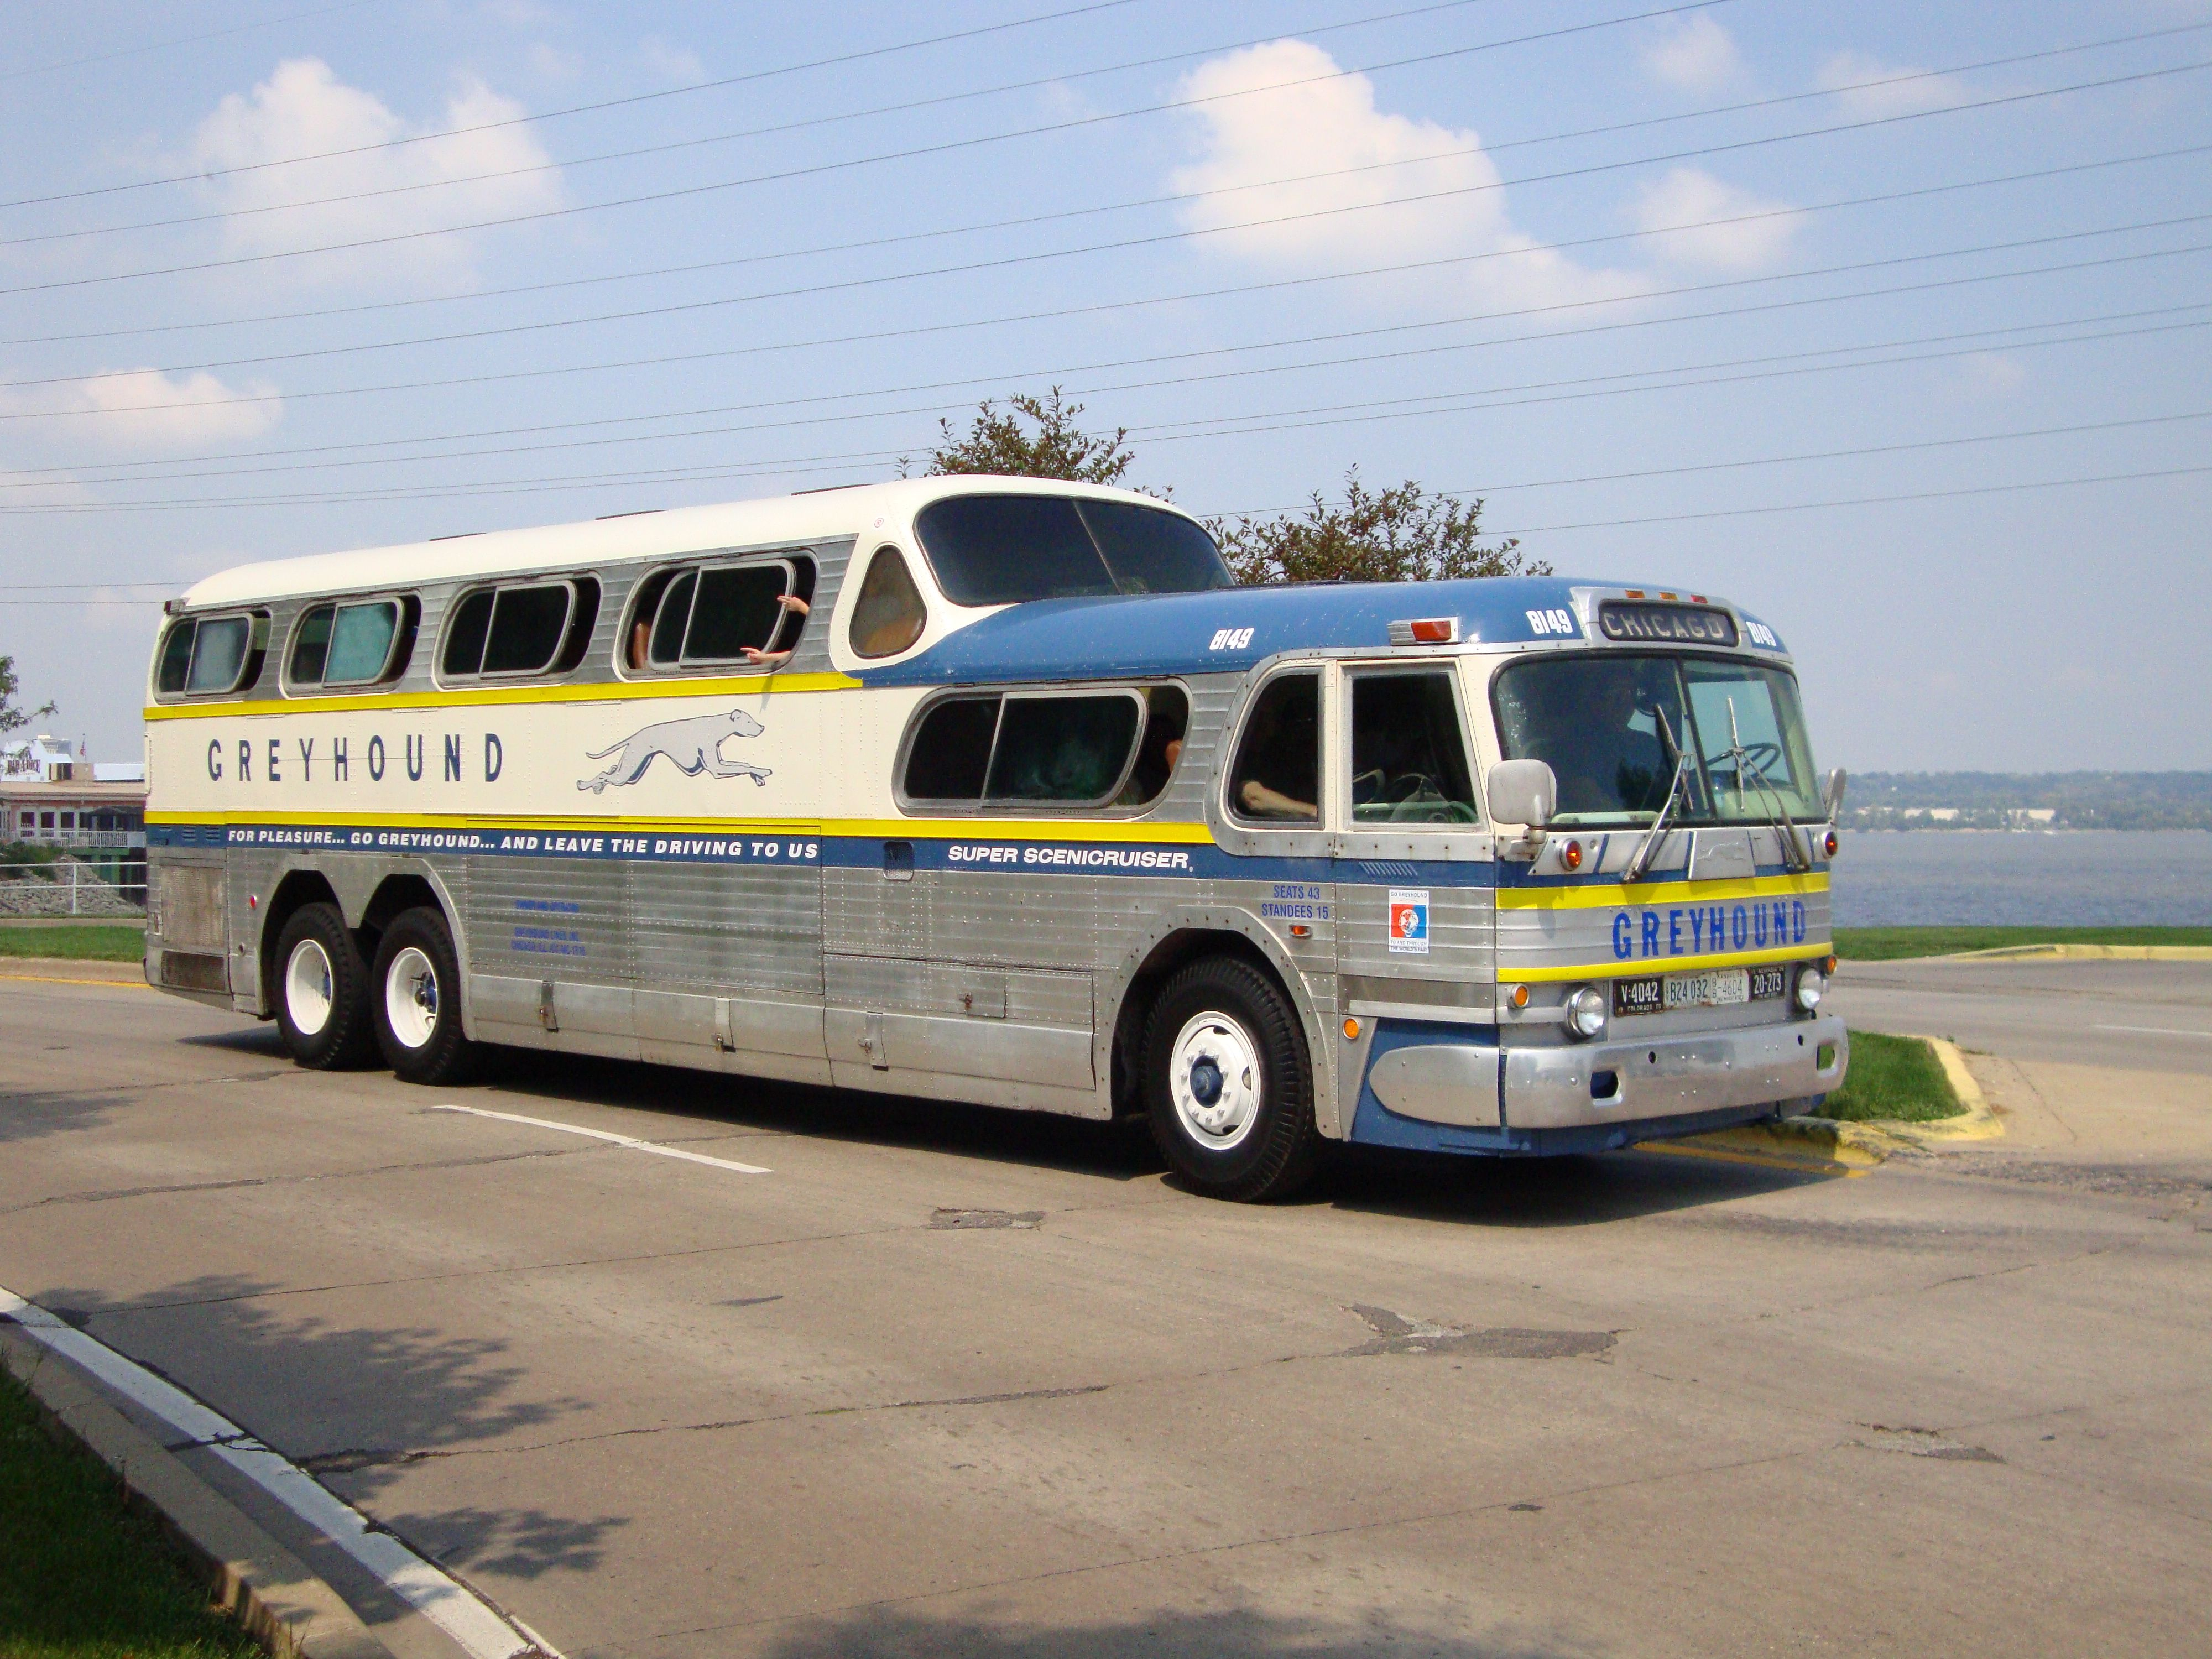 Scenicruiser Rally Scheduled With Images Greyhound Bus Bus